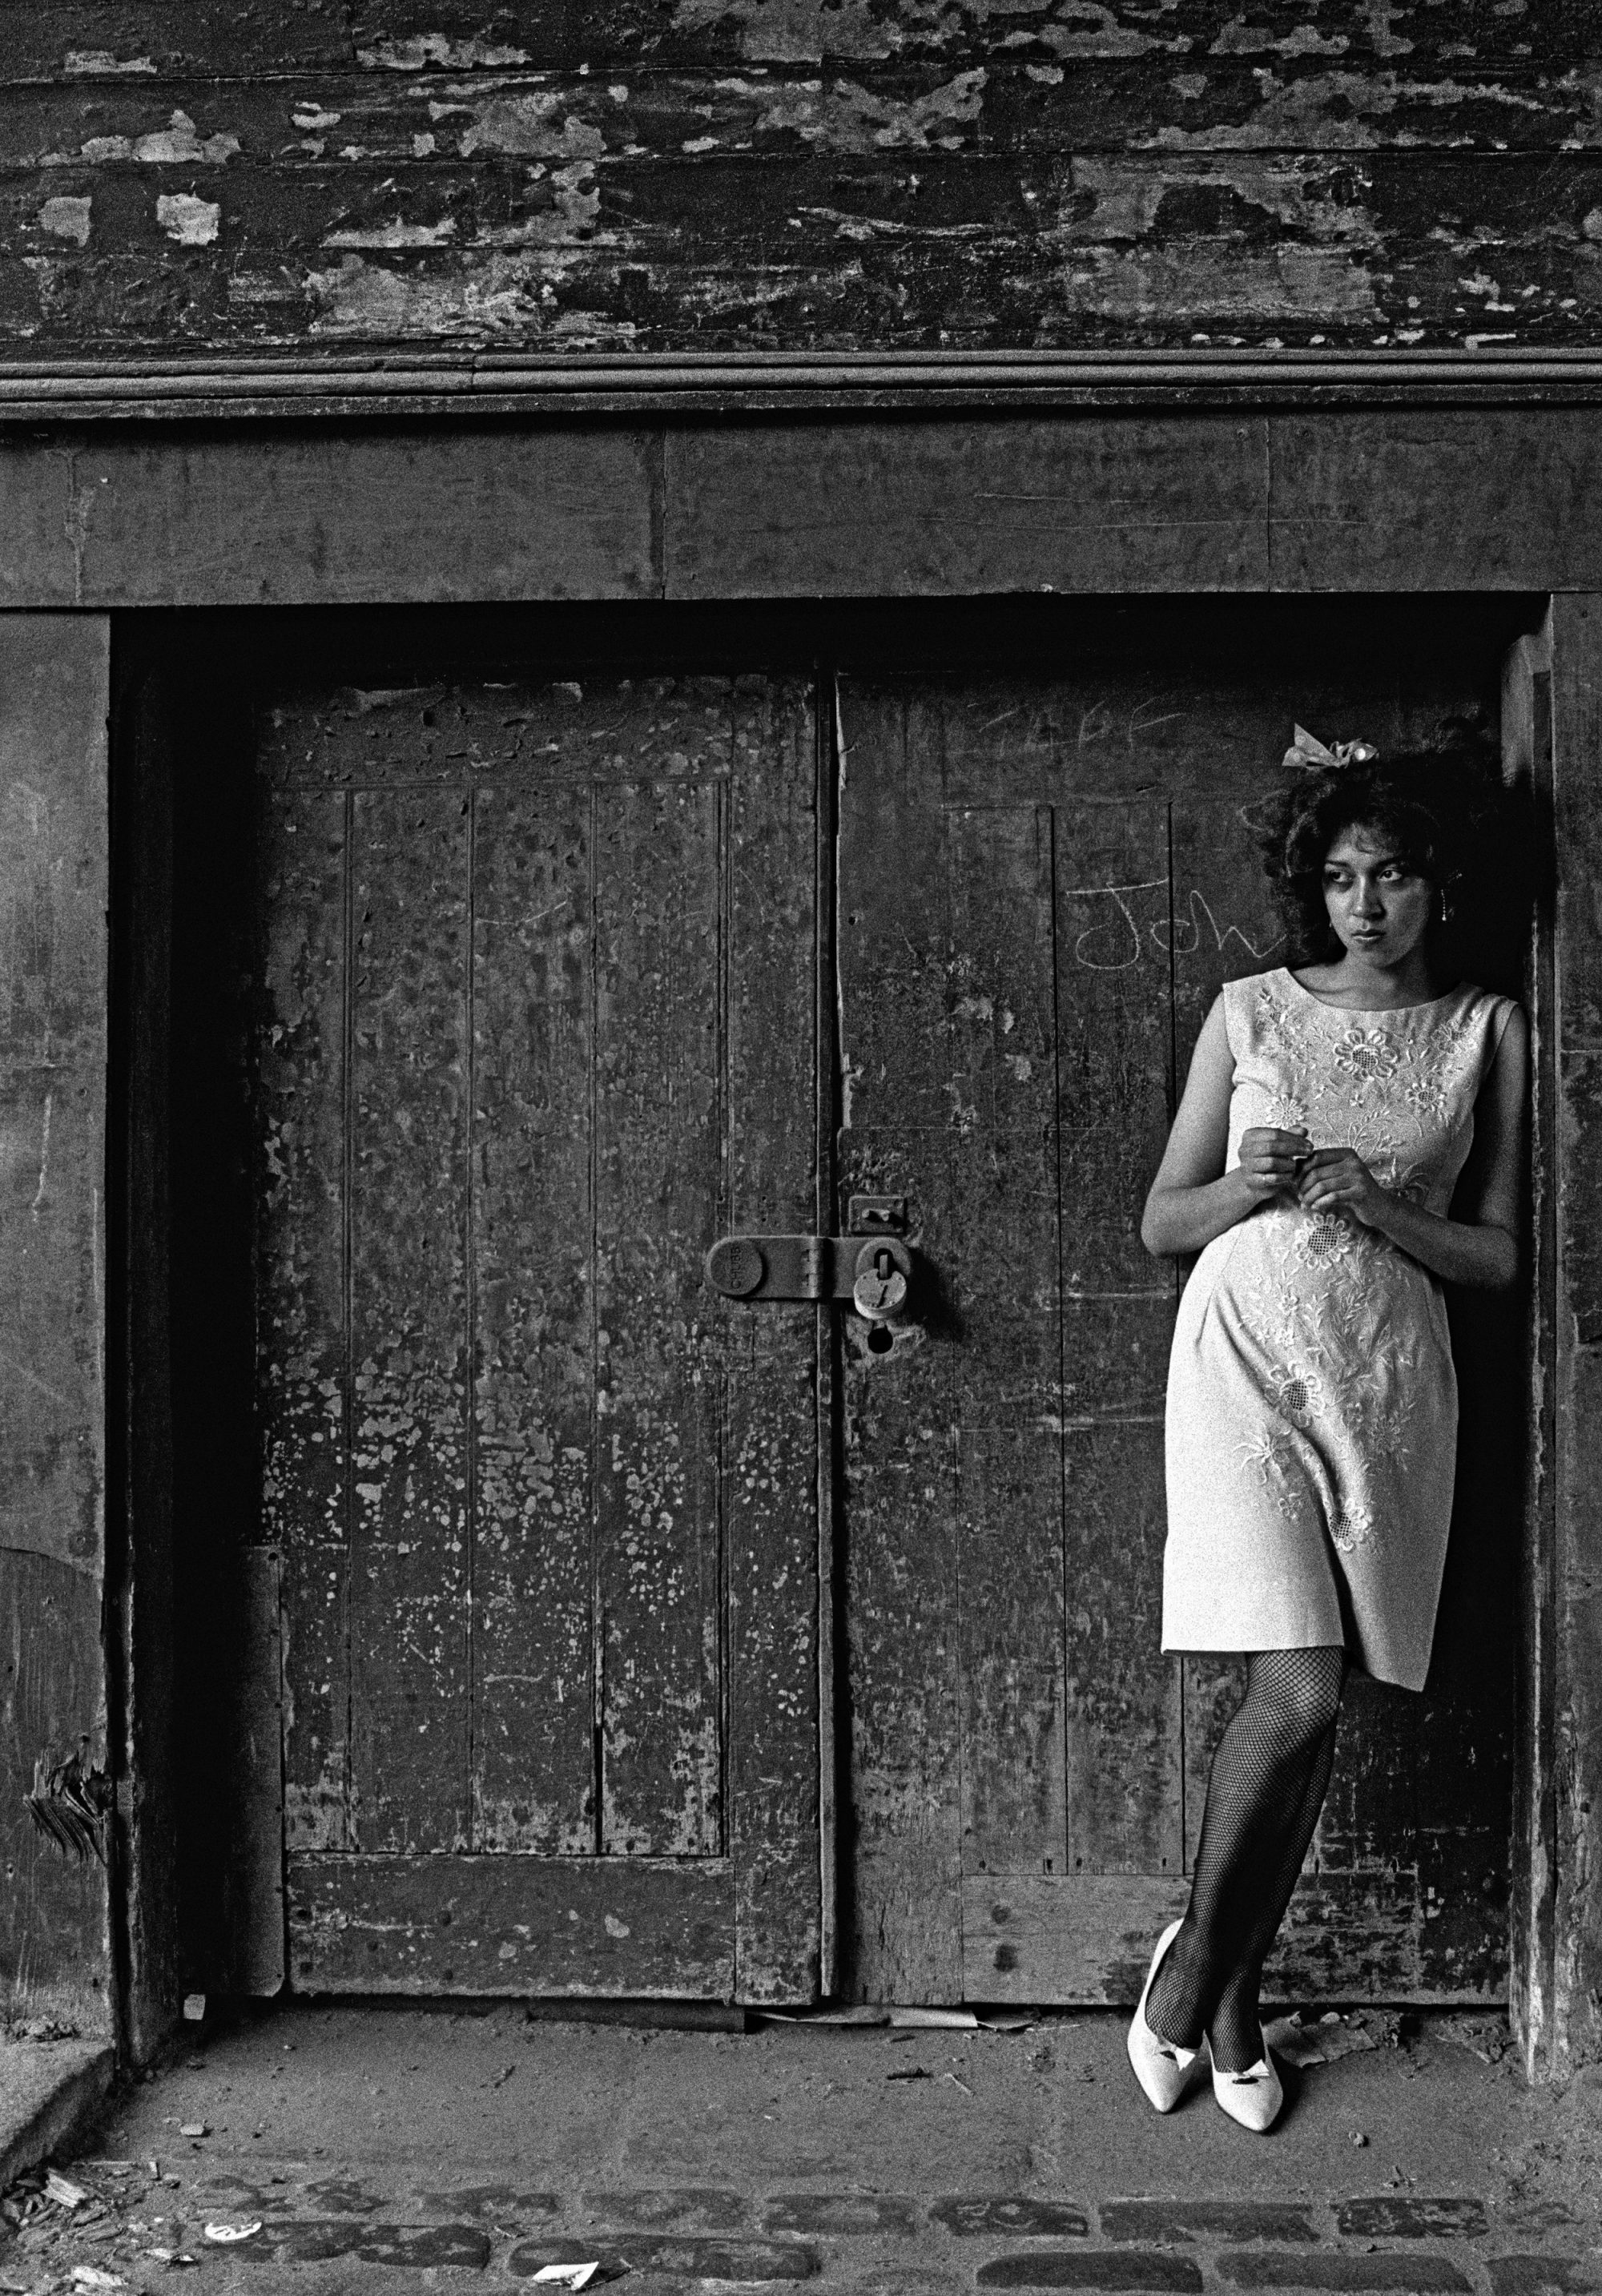 Hackney, East London 1980 by Syd Shelton